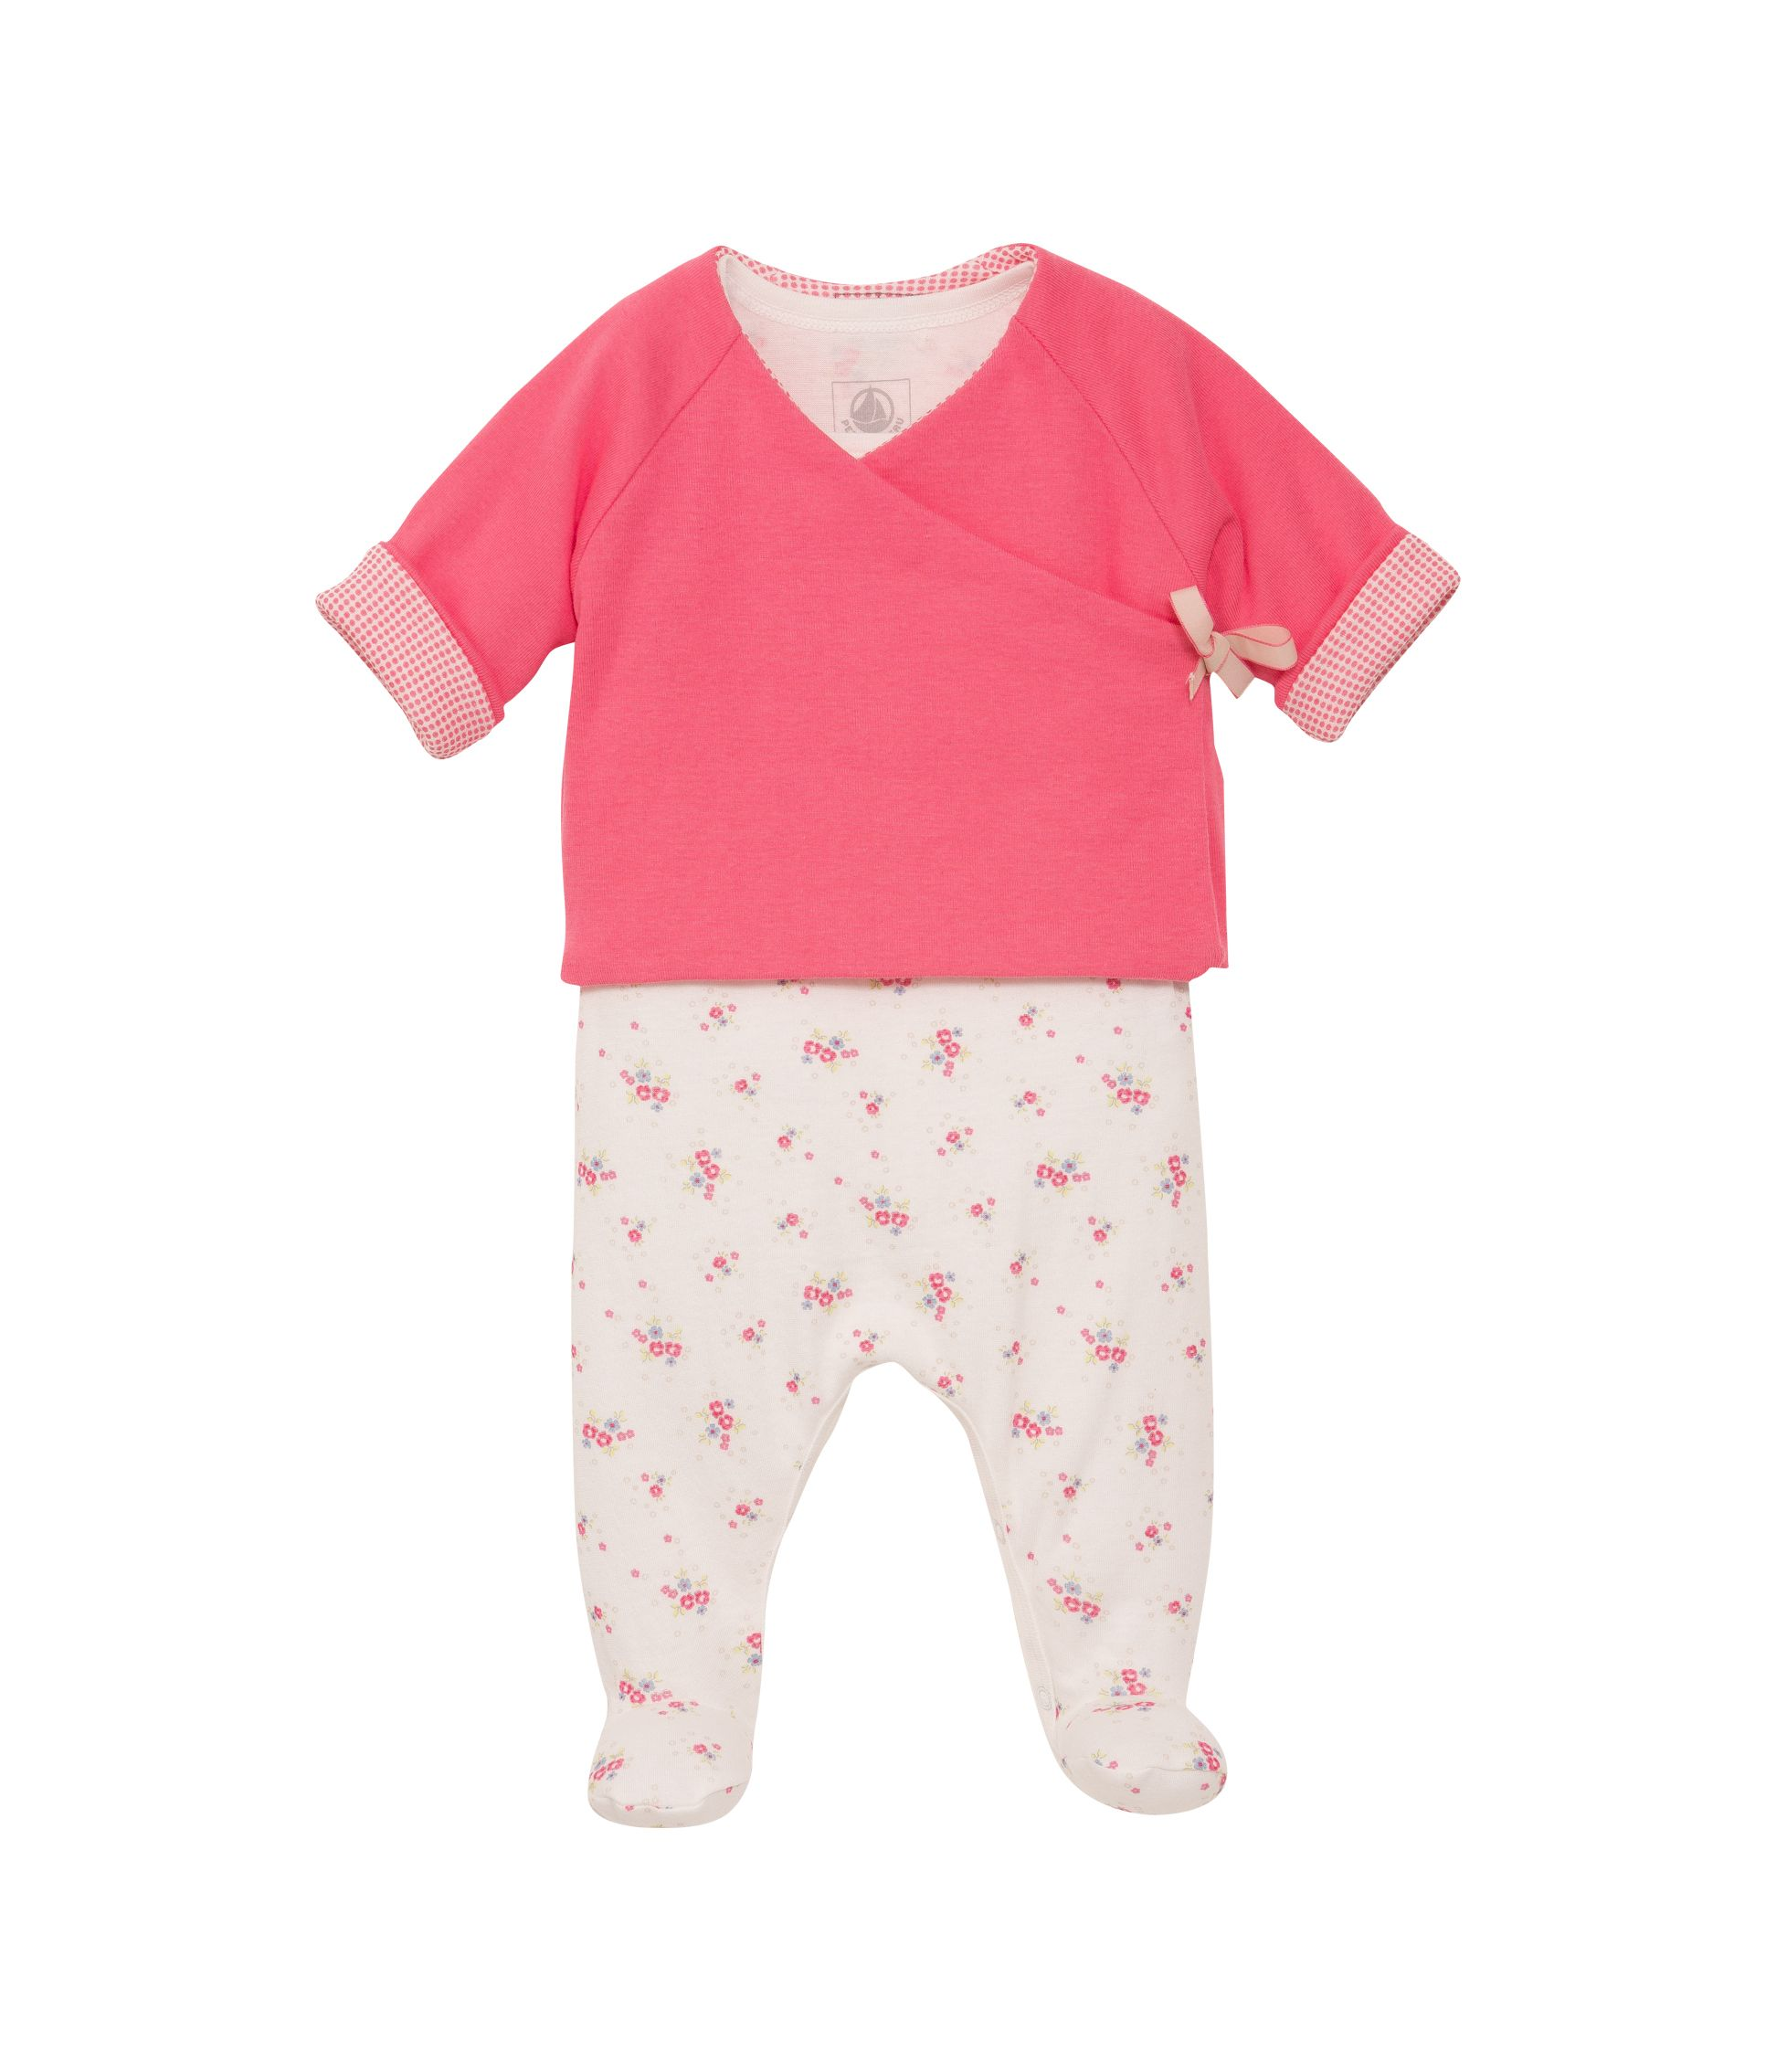 Baby girls jacket and sleepsuit set